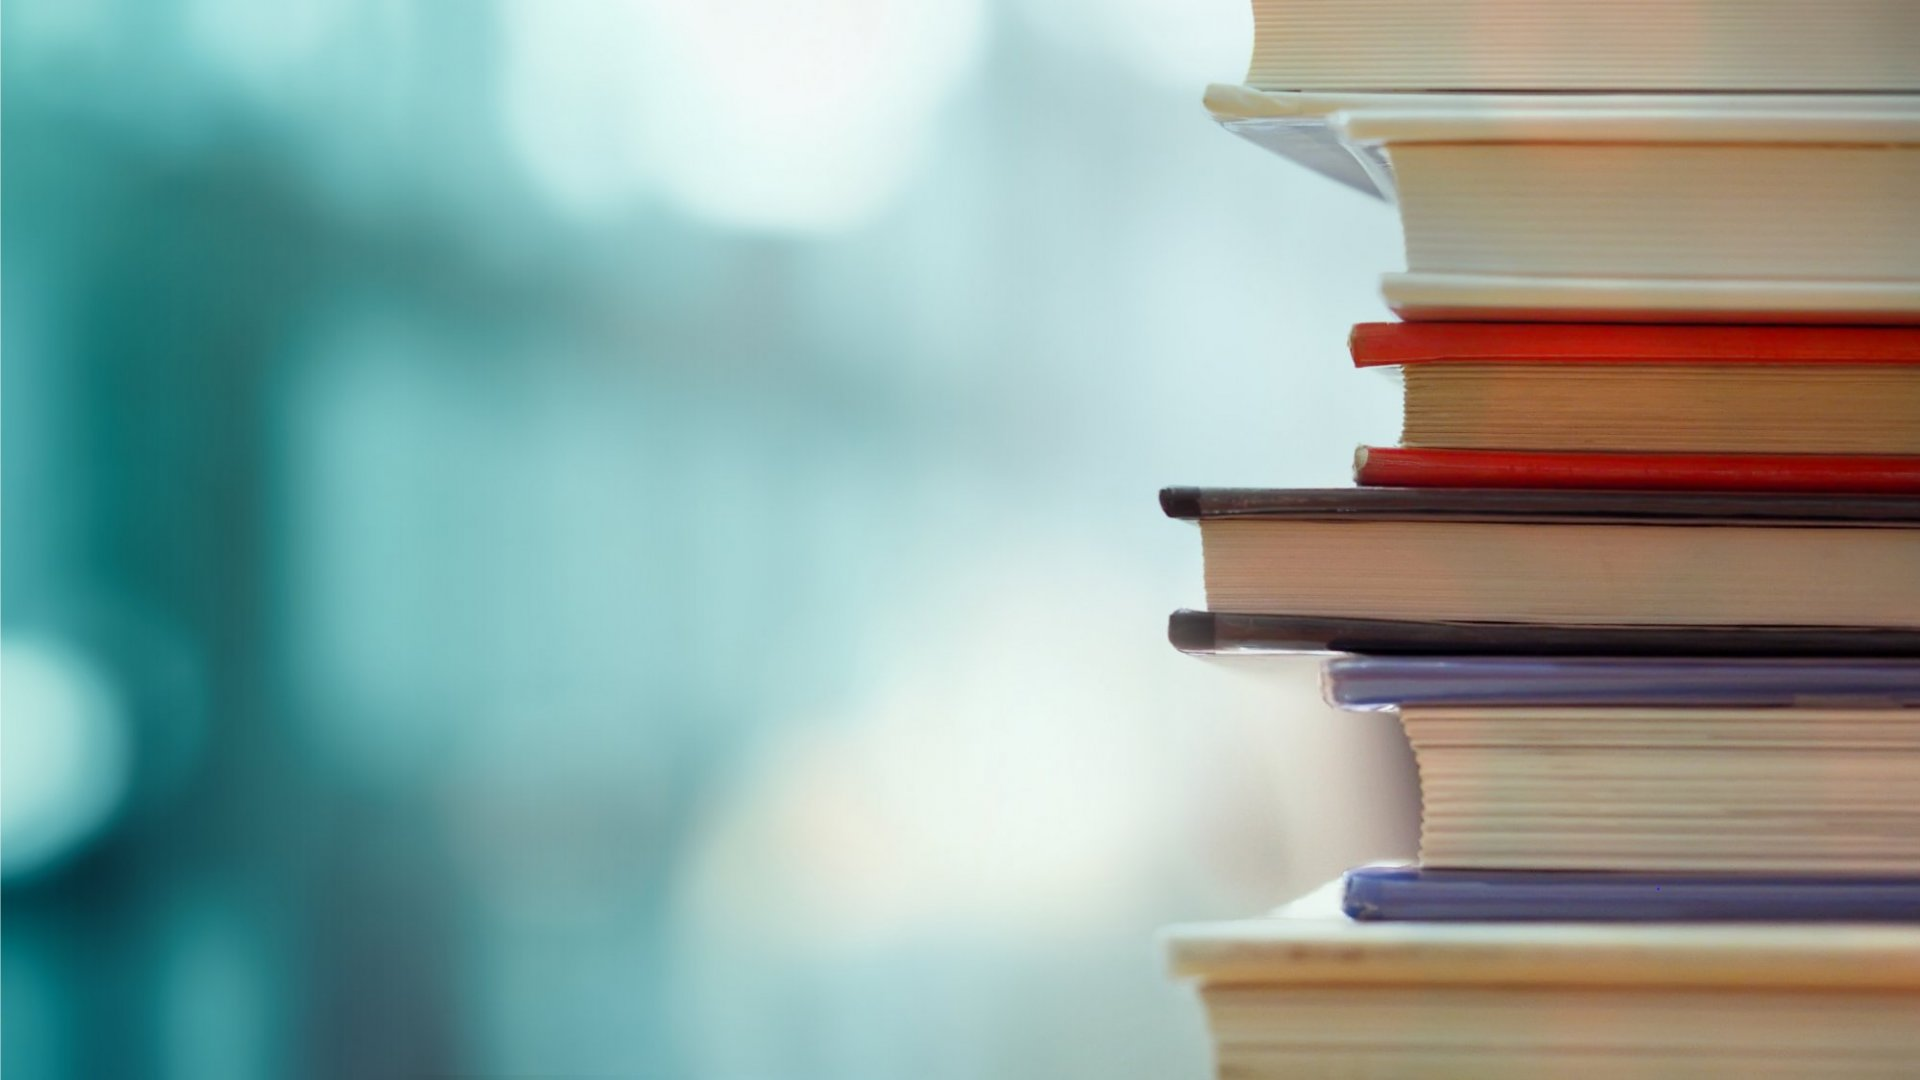 5 Books I'm Recommending to My Team This Year (and Why You Should Too)